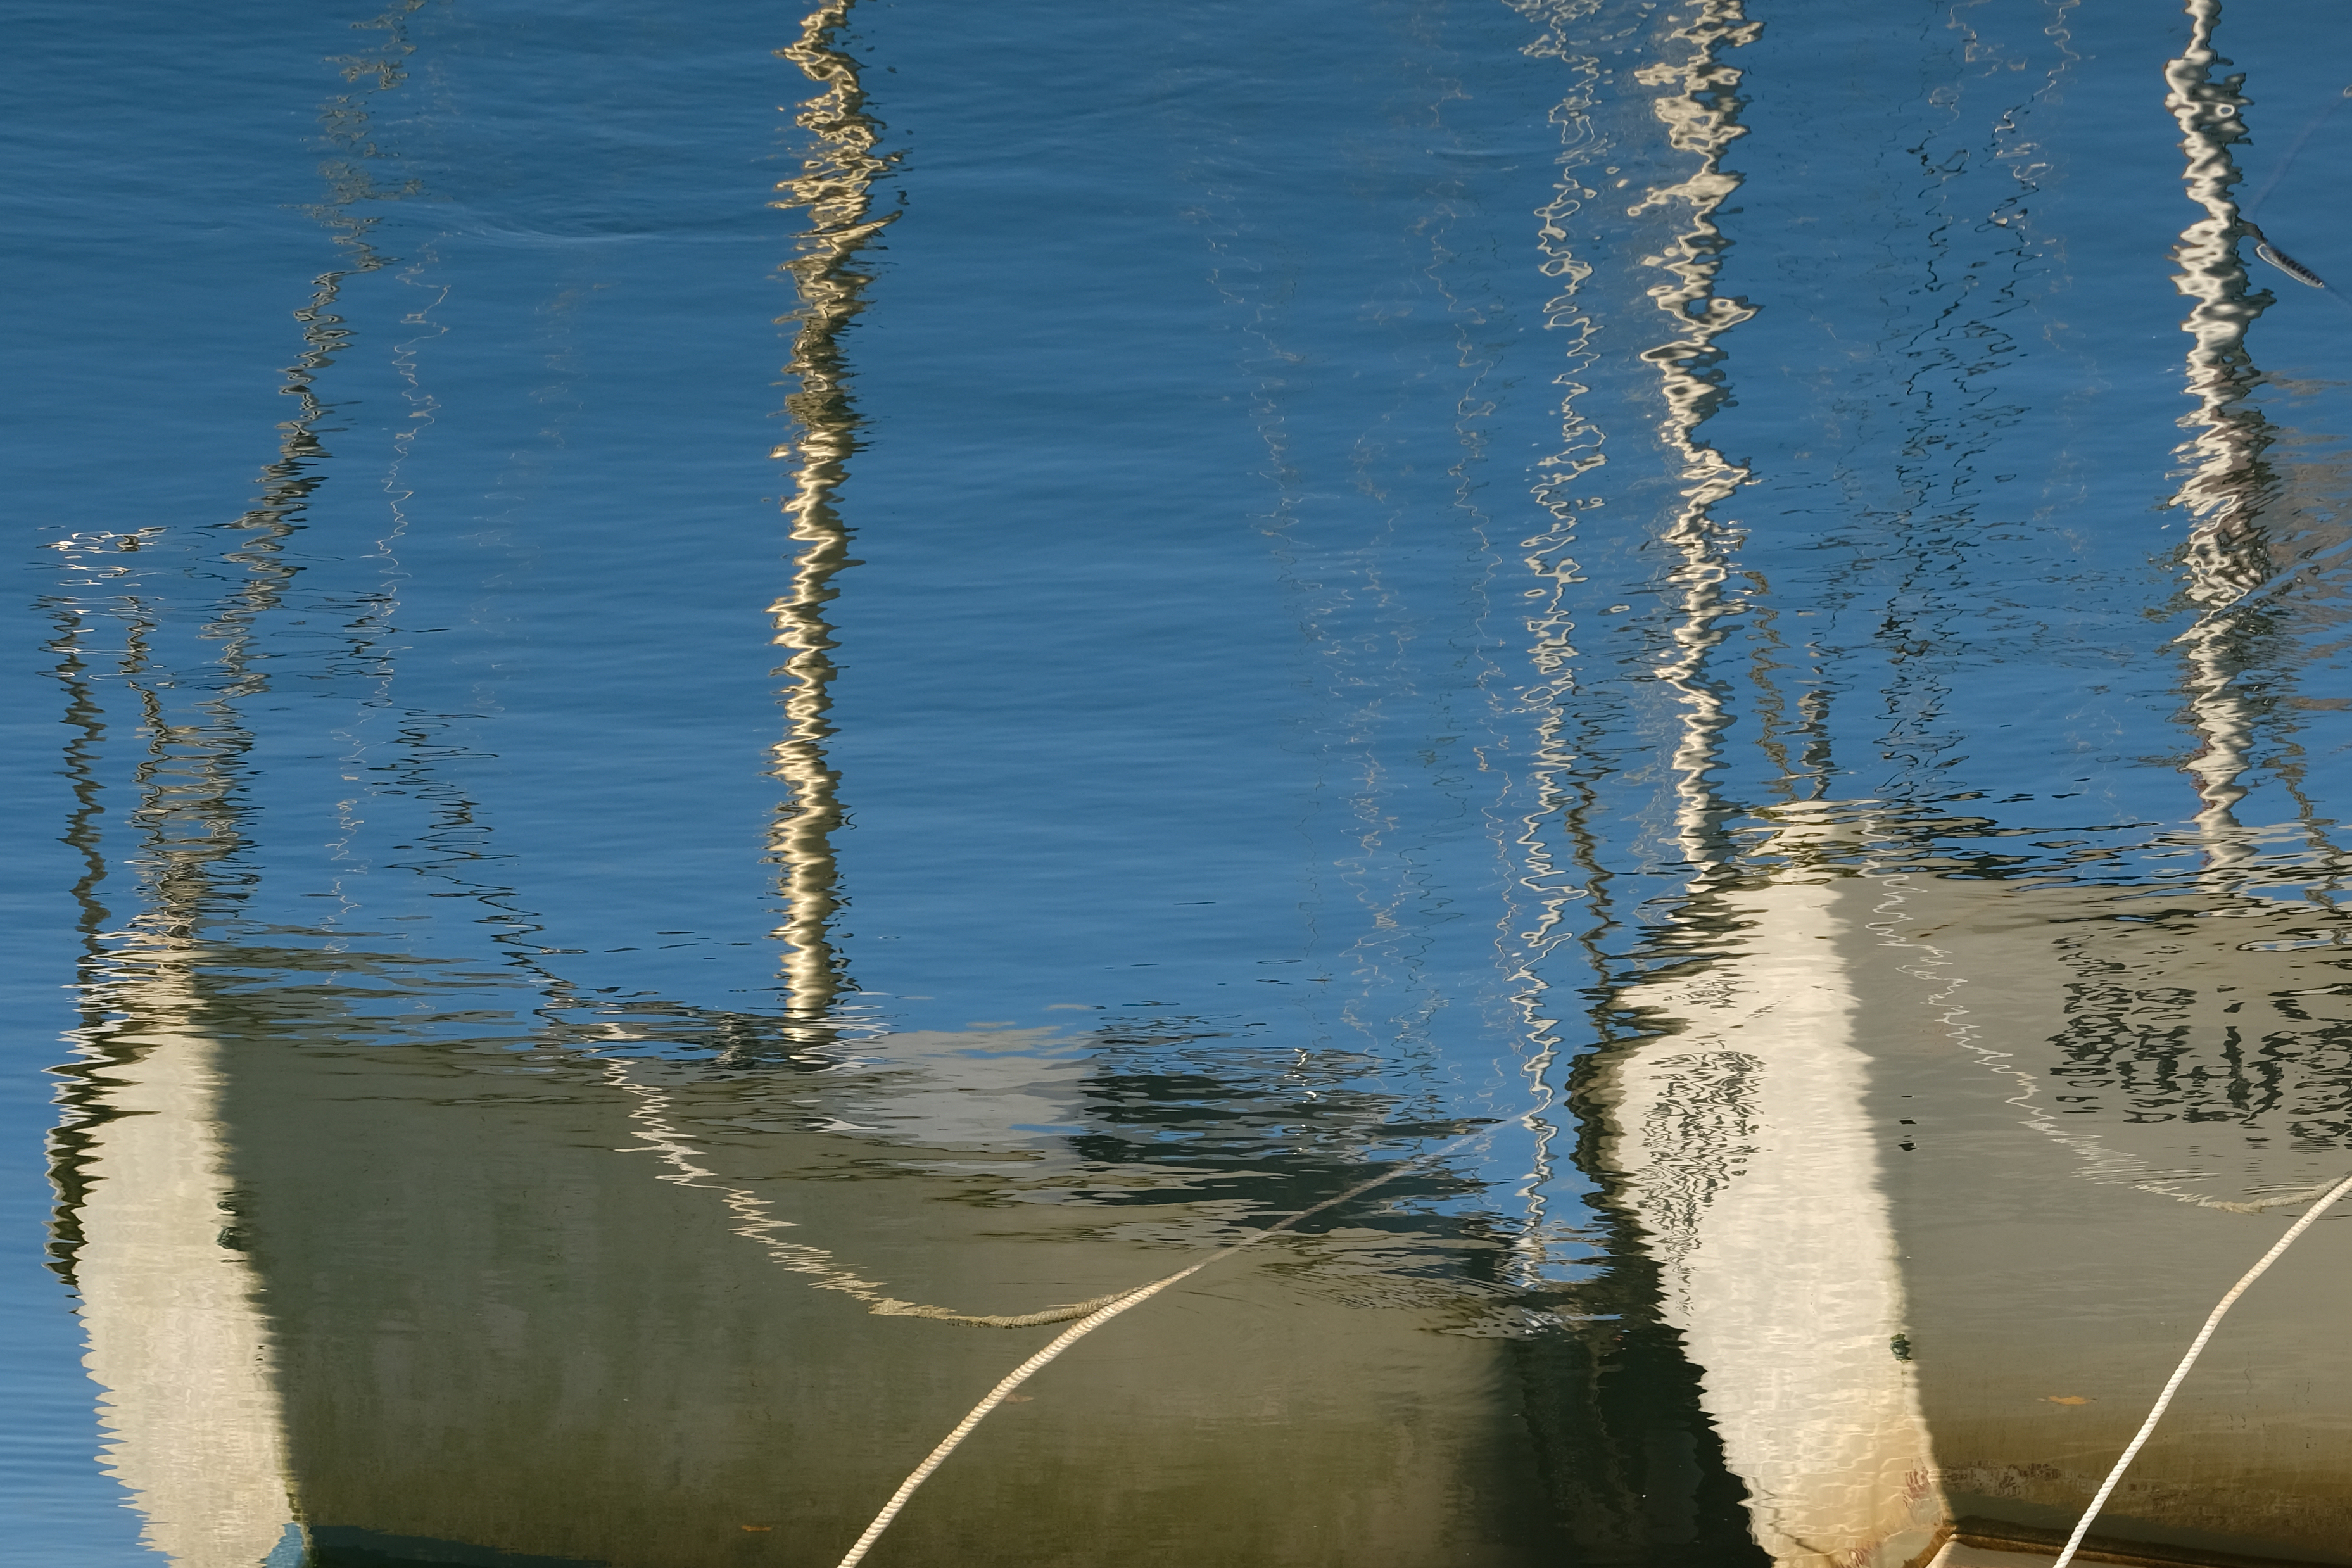 Gilles-Jouy-reflets